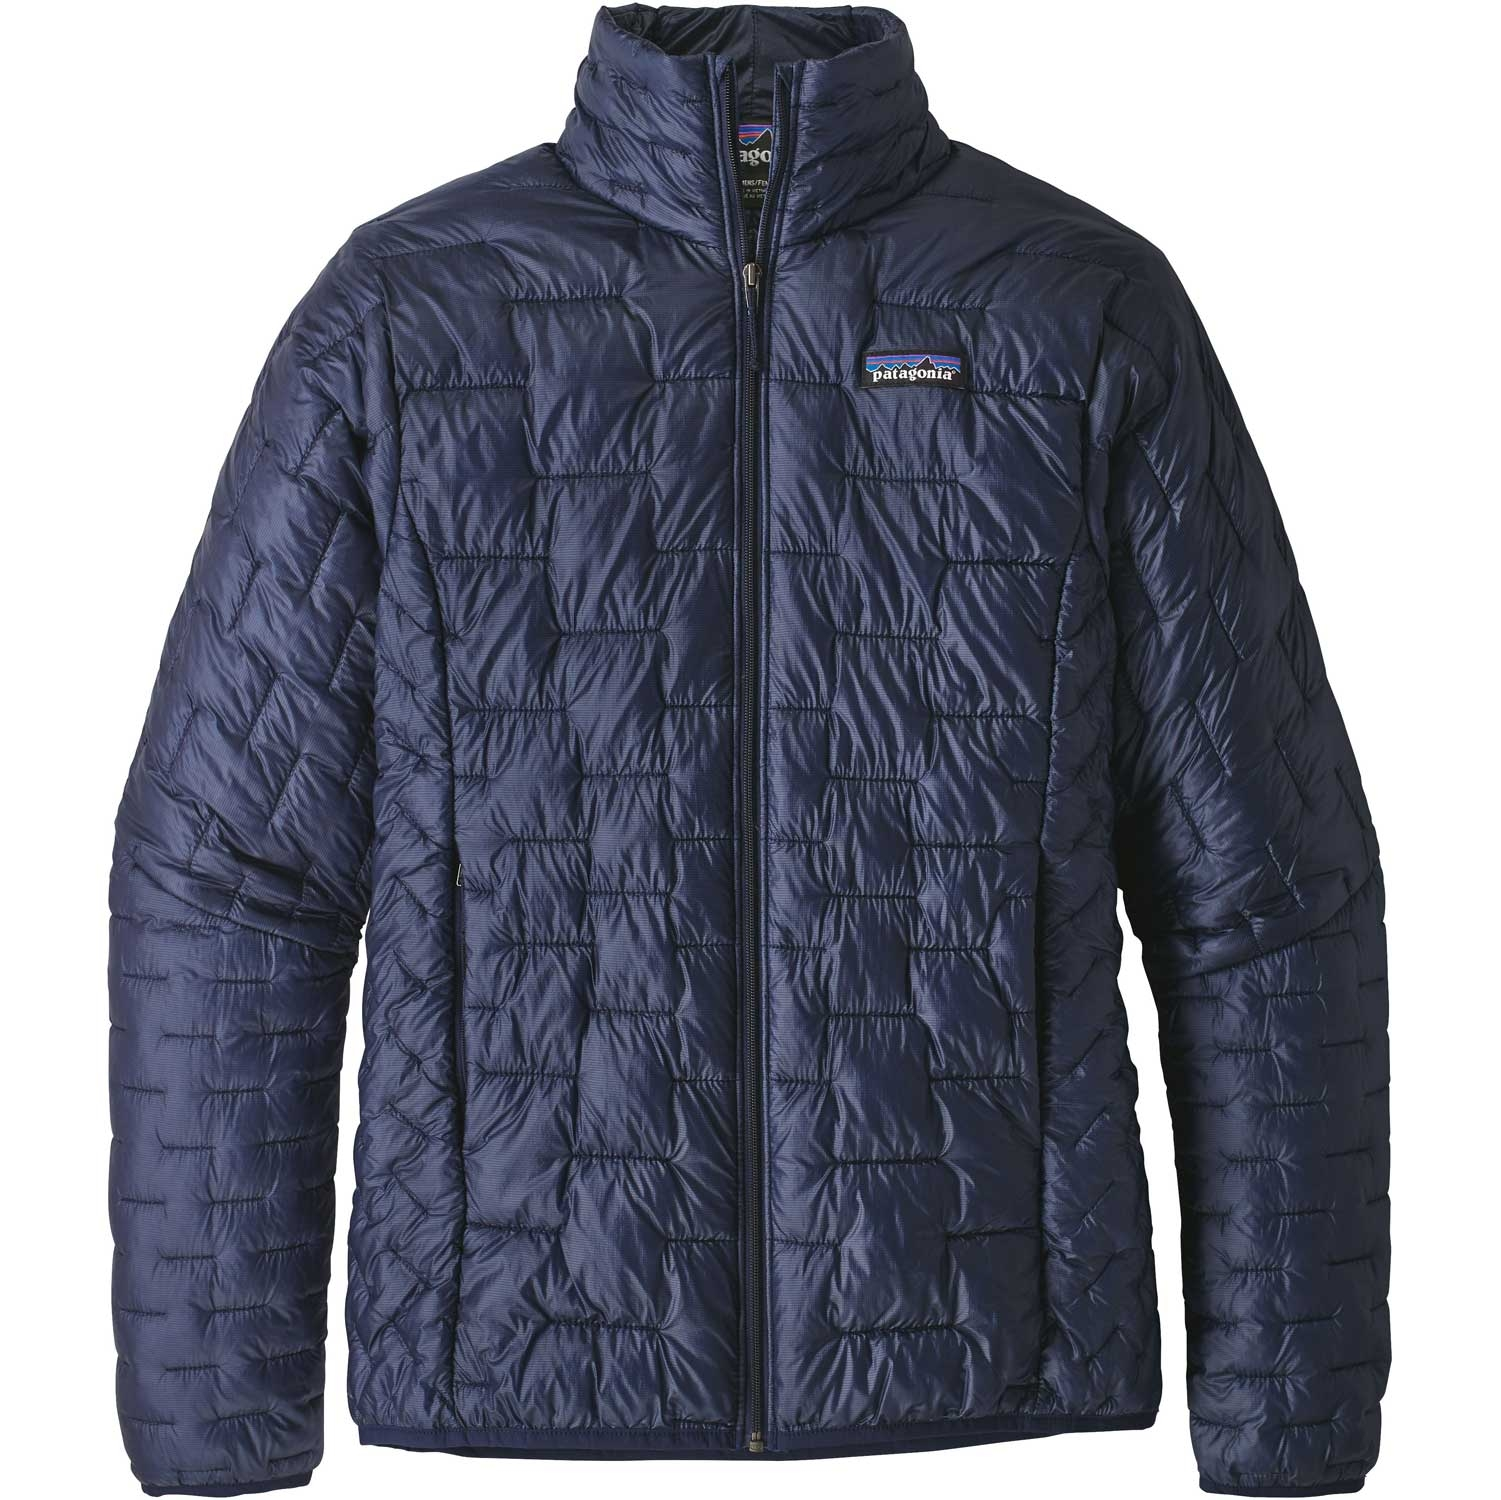 Insulated Walking Jackets